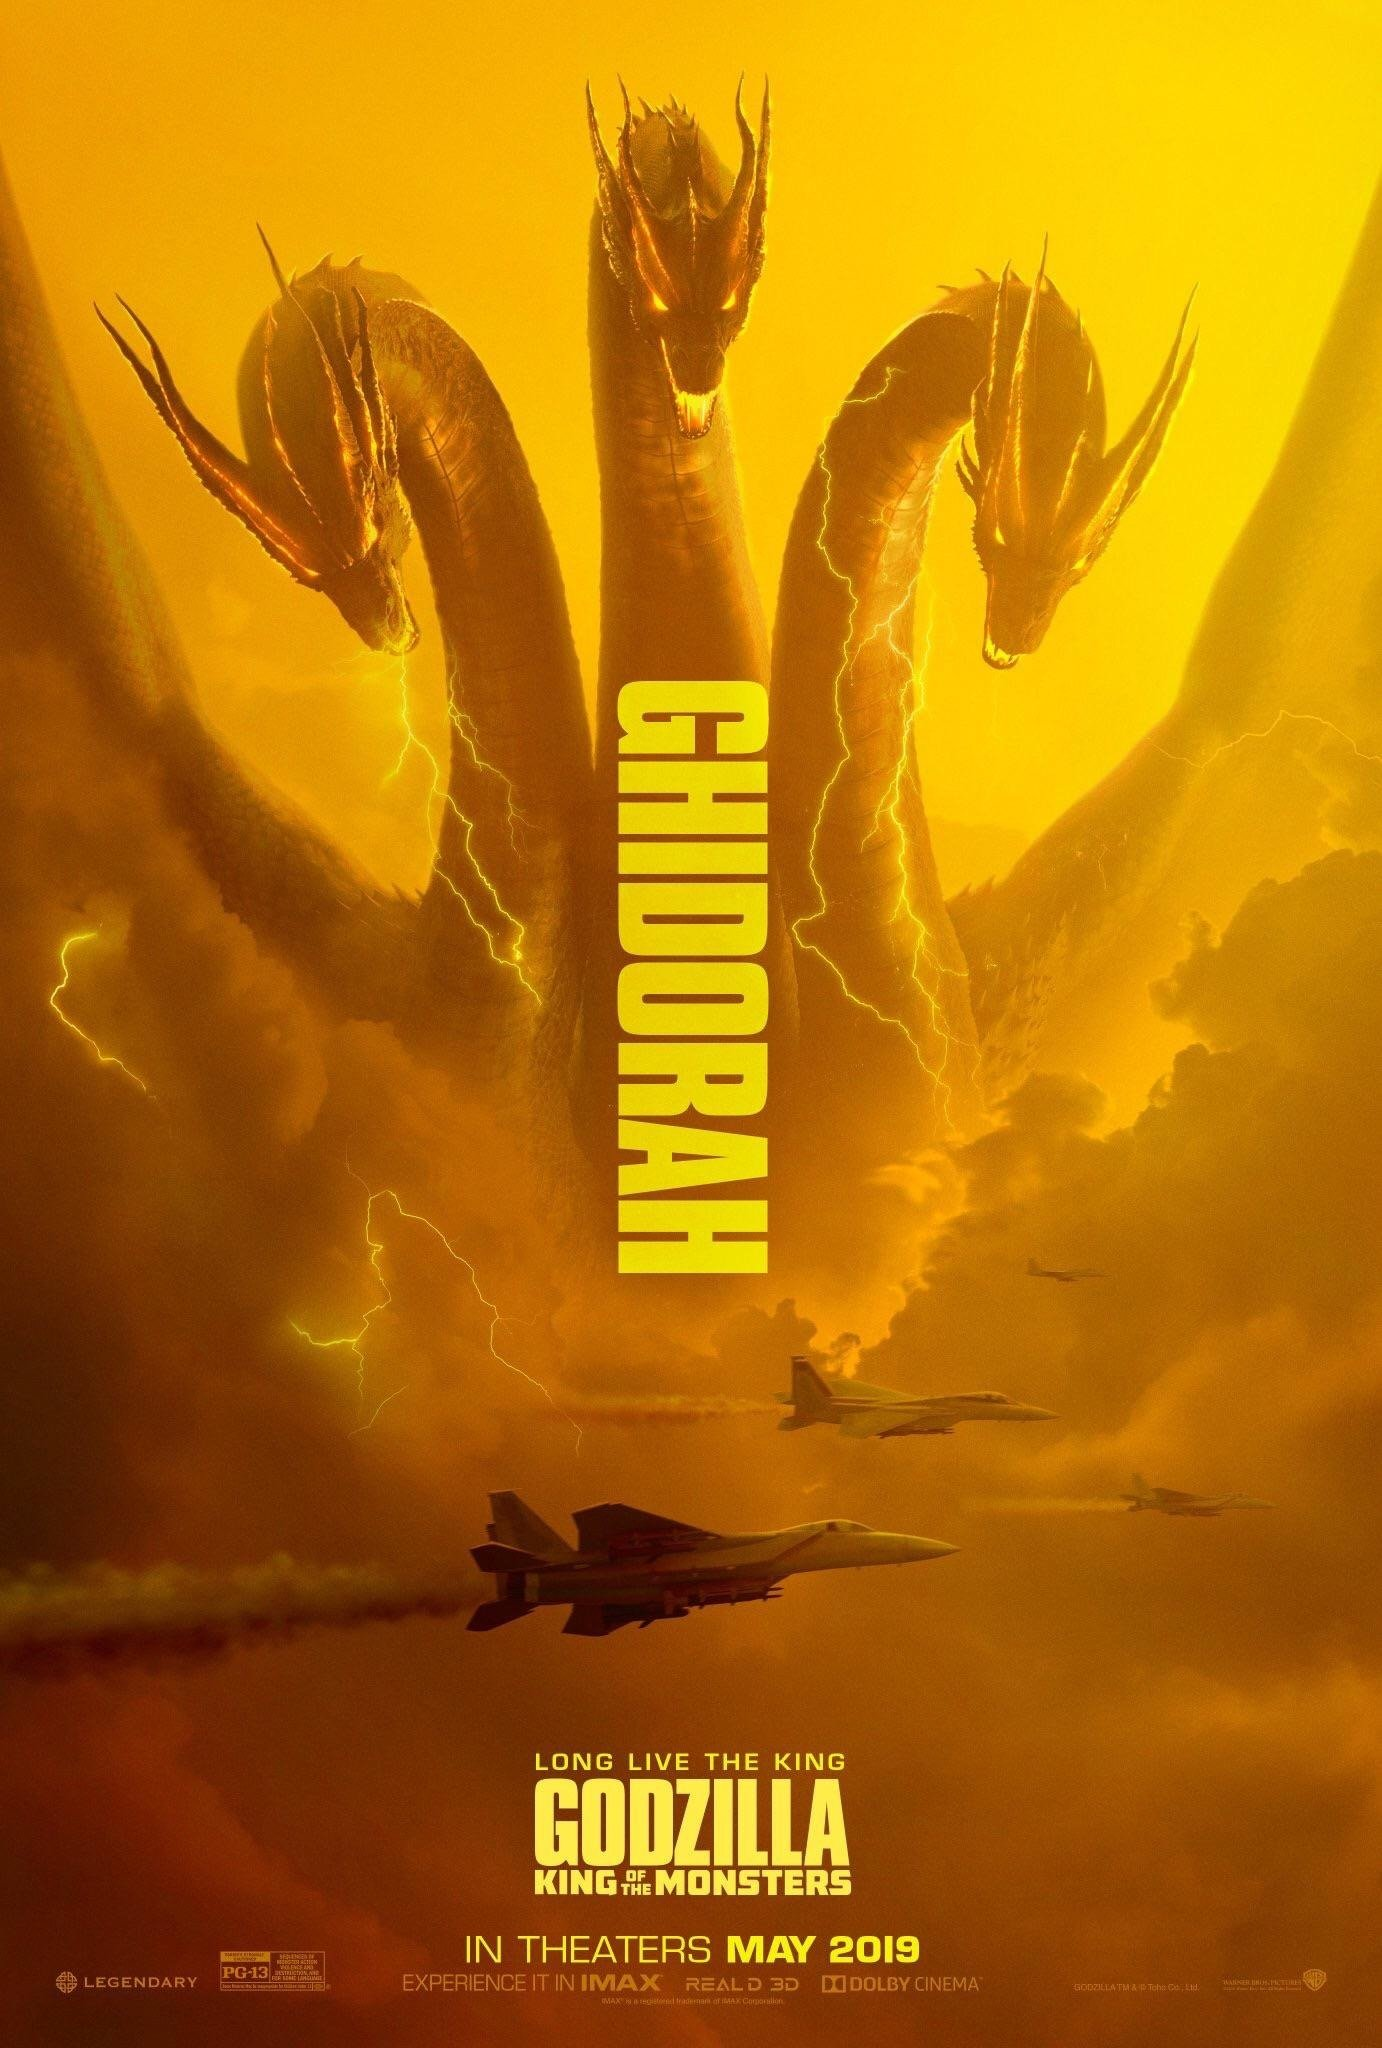 Poster du film Godzilla: King of the Monsters avec le Kaijū Ghidorah